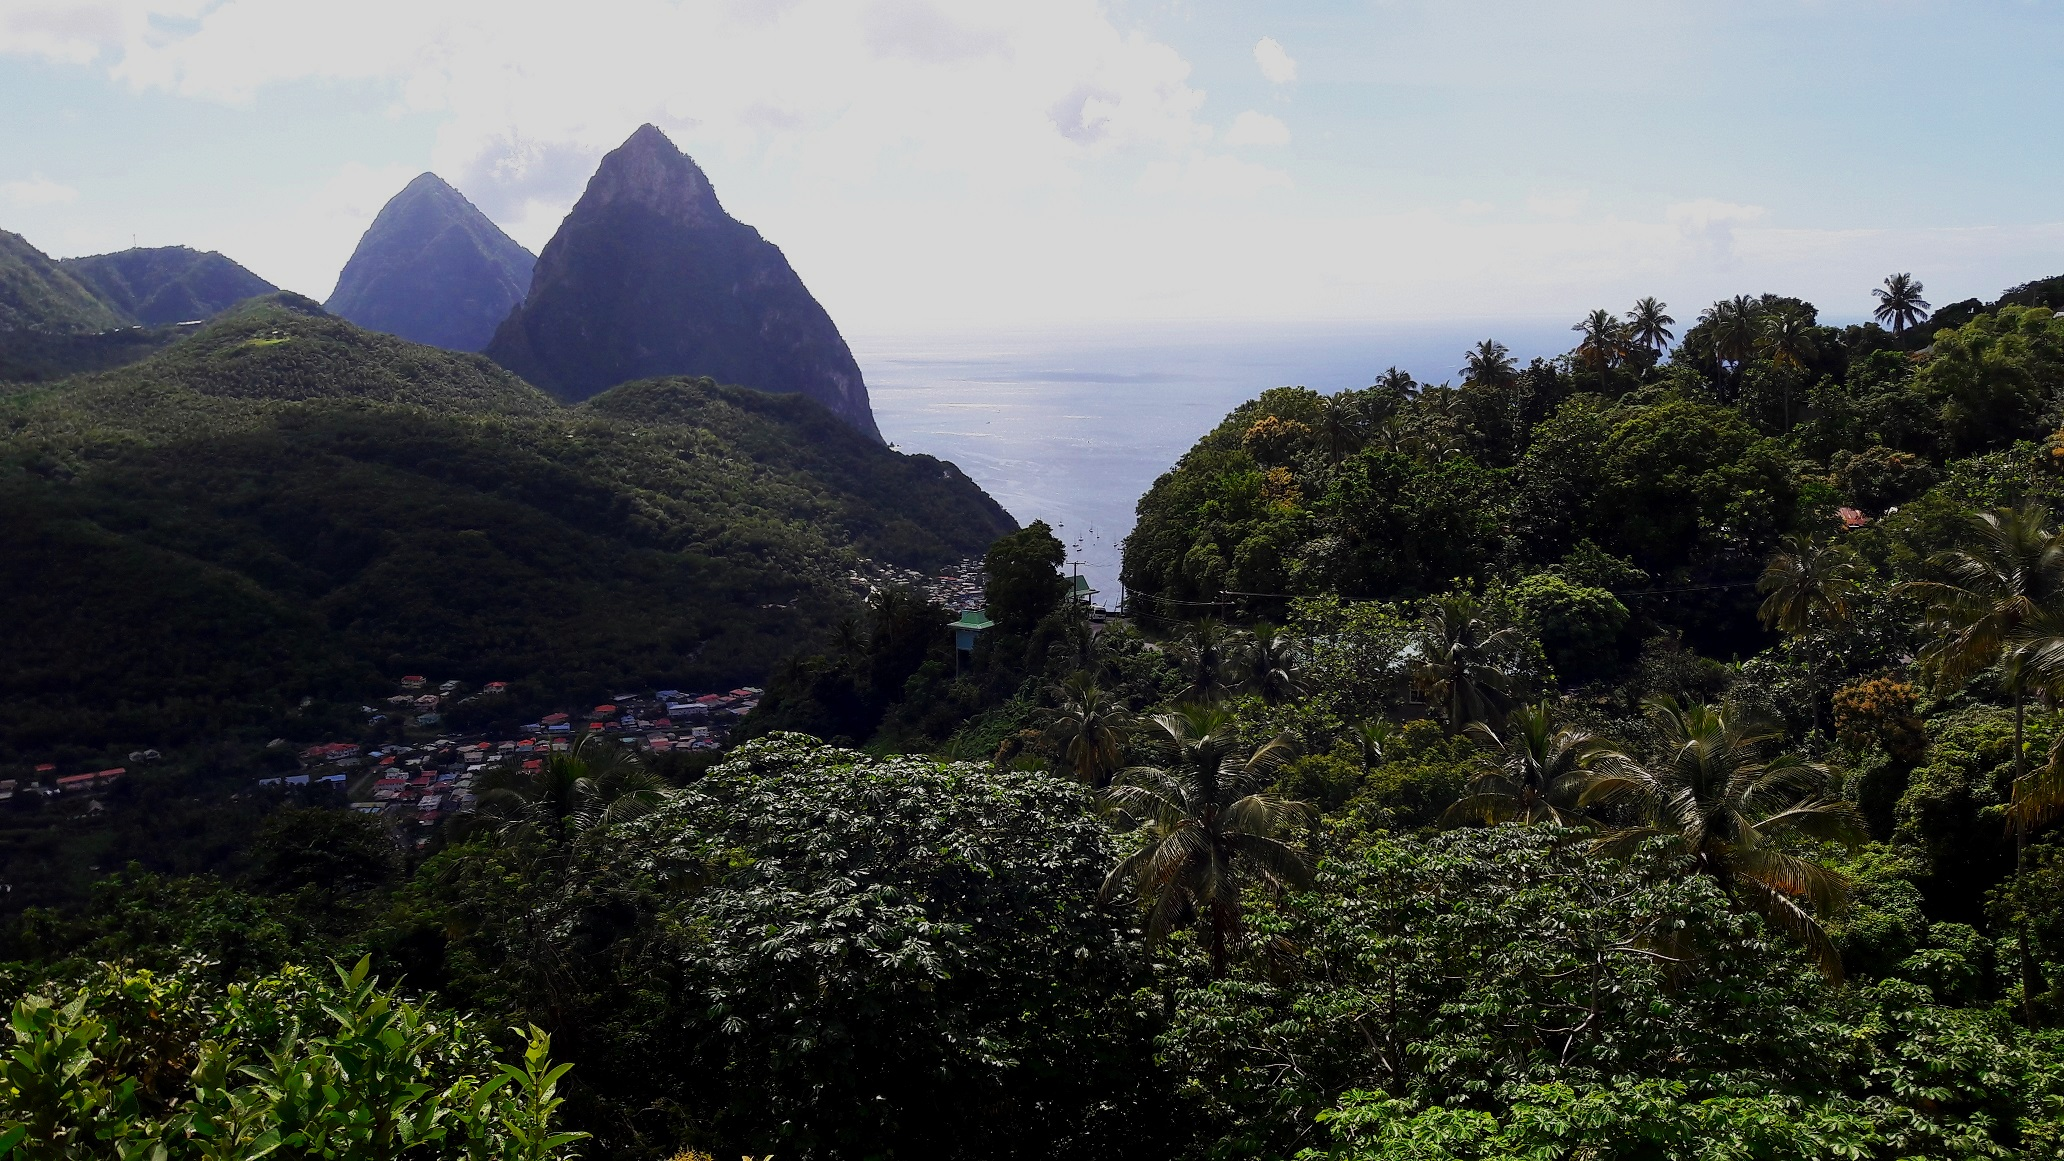 View of Les Pitons from the balcony of The Beacon